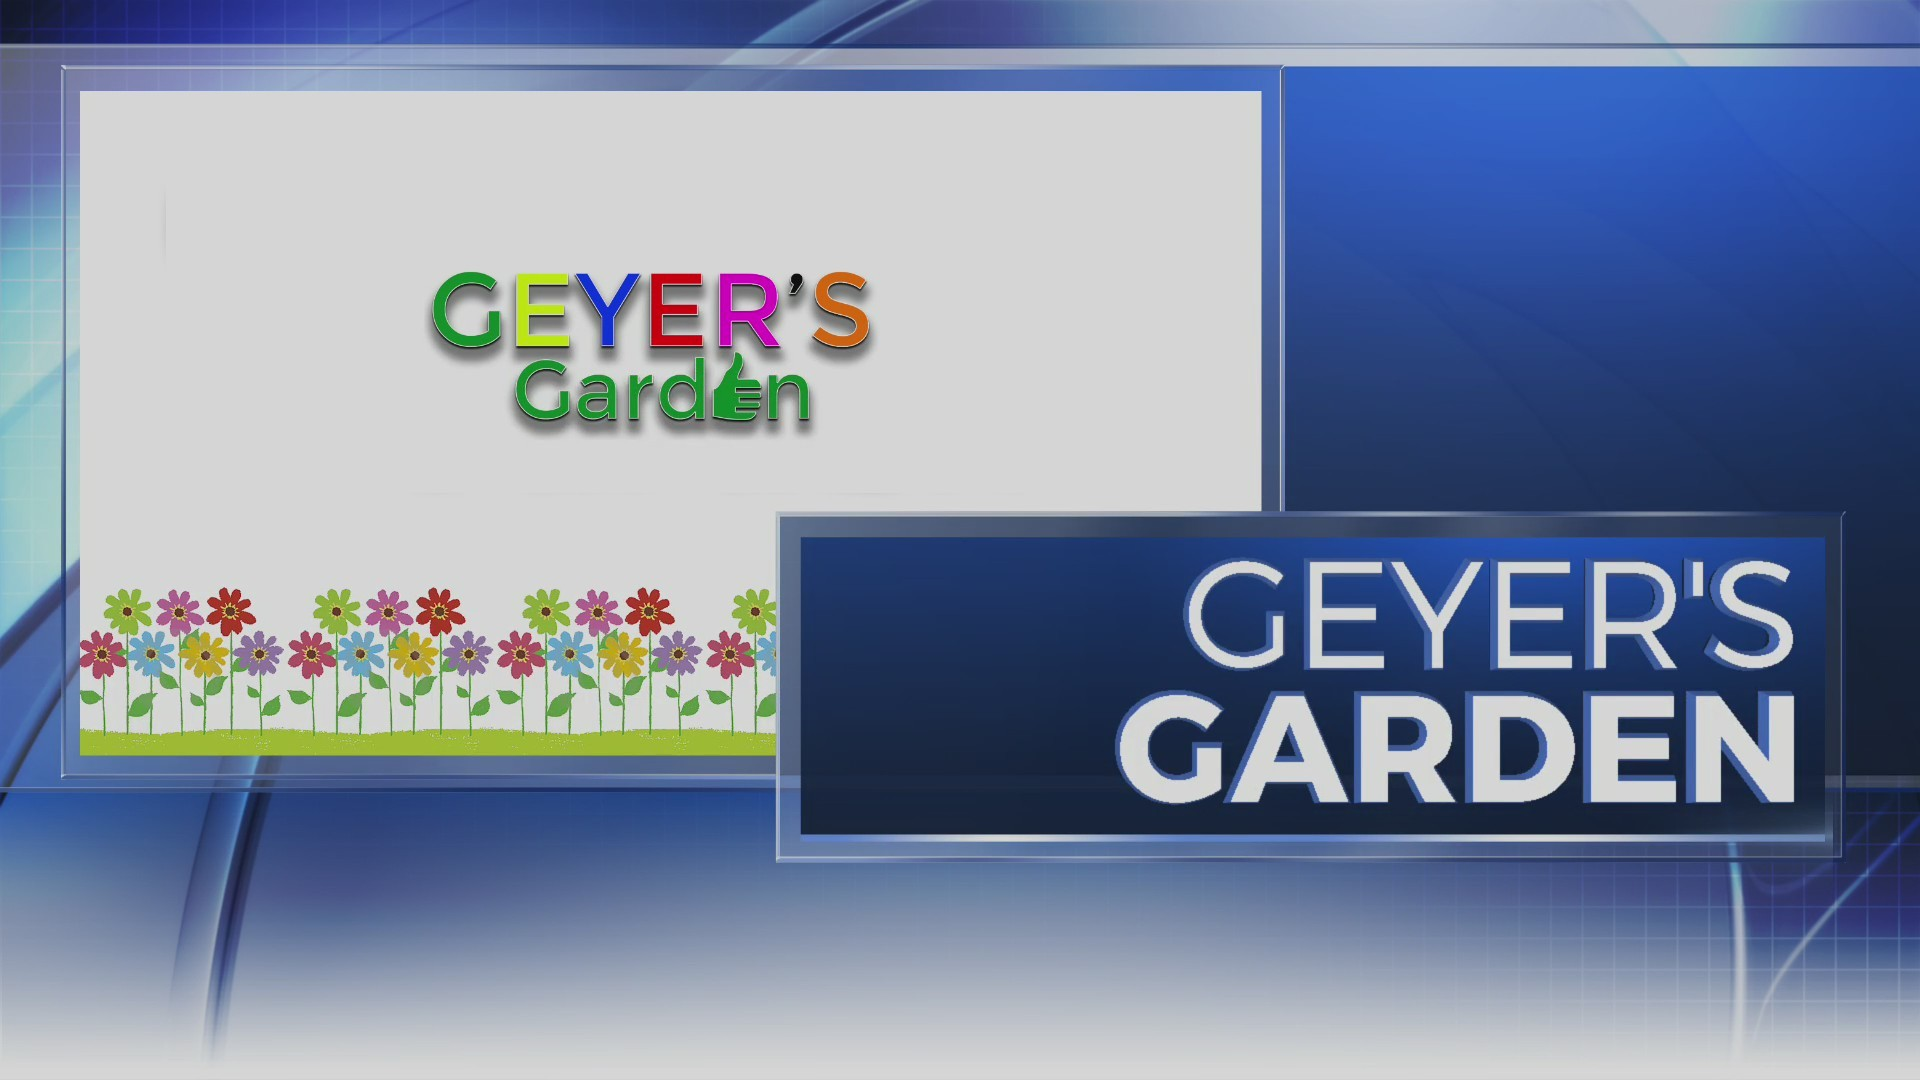 Geyer's Garden: Treating trees for gypsy moths